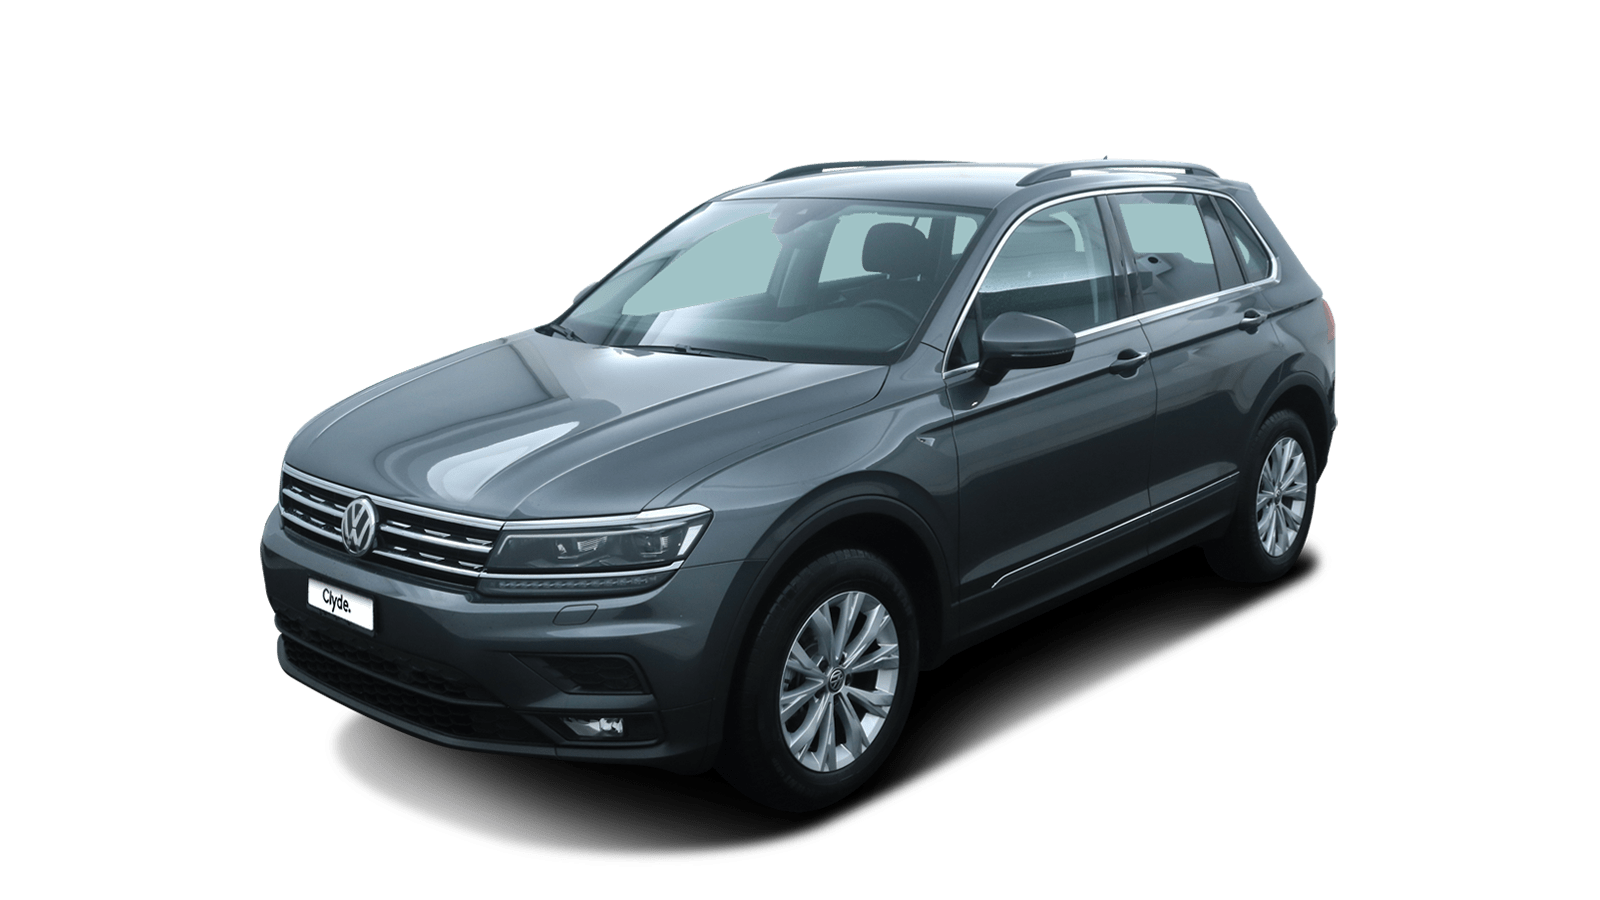 VW Tiguan Grey front - Clyde car subscription